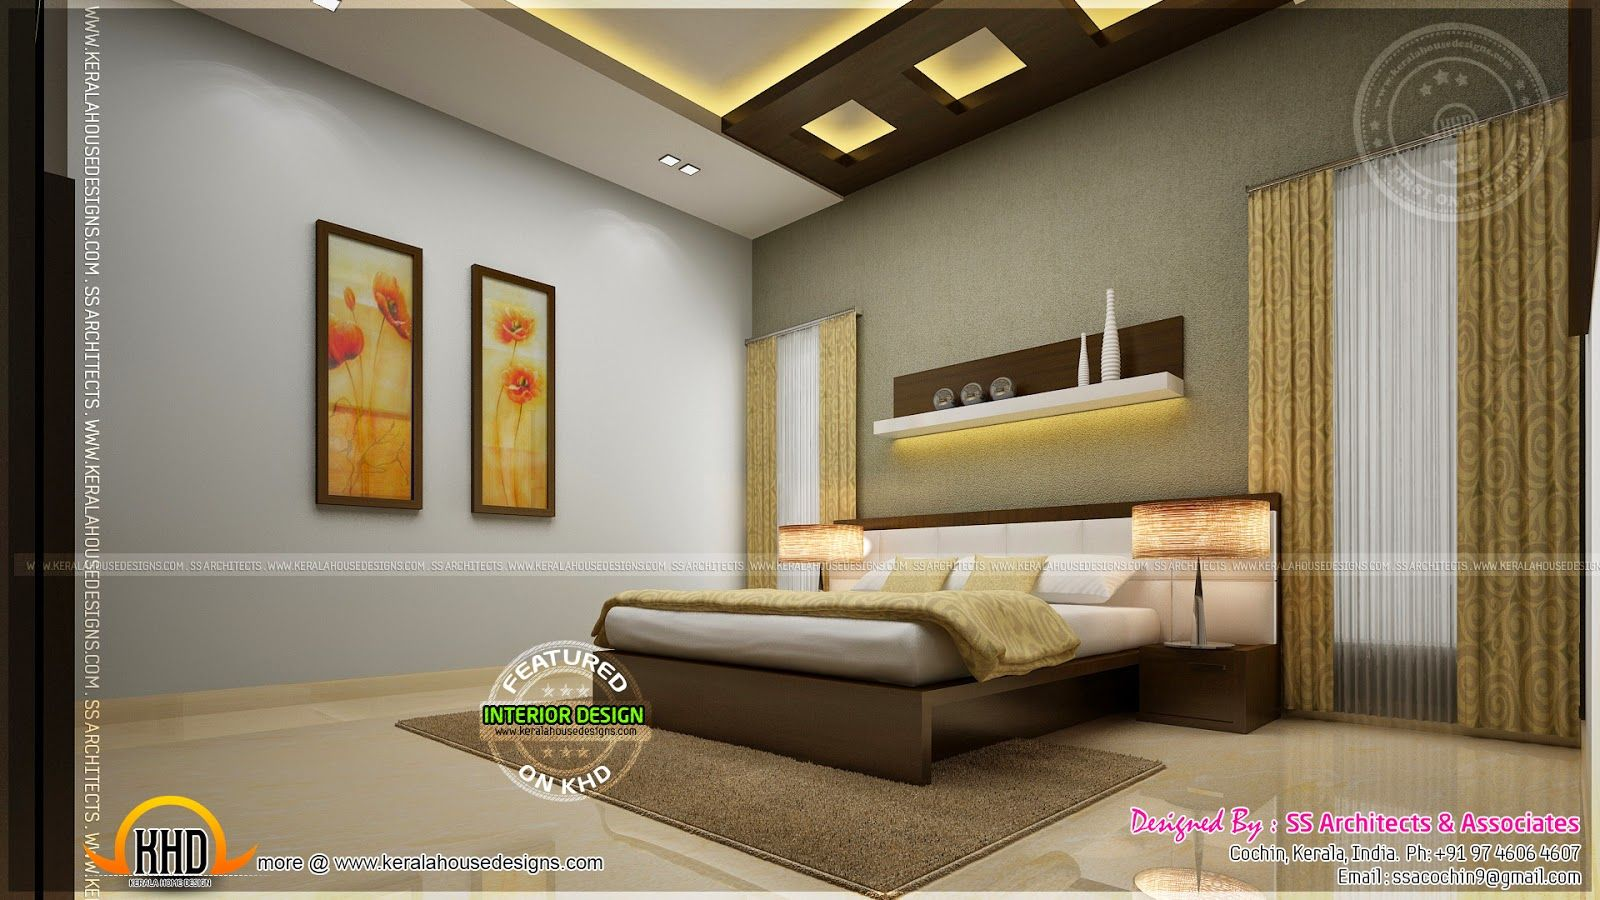 Indian master bedroom interior design google search for 3 bedroom interior design